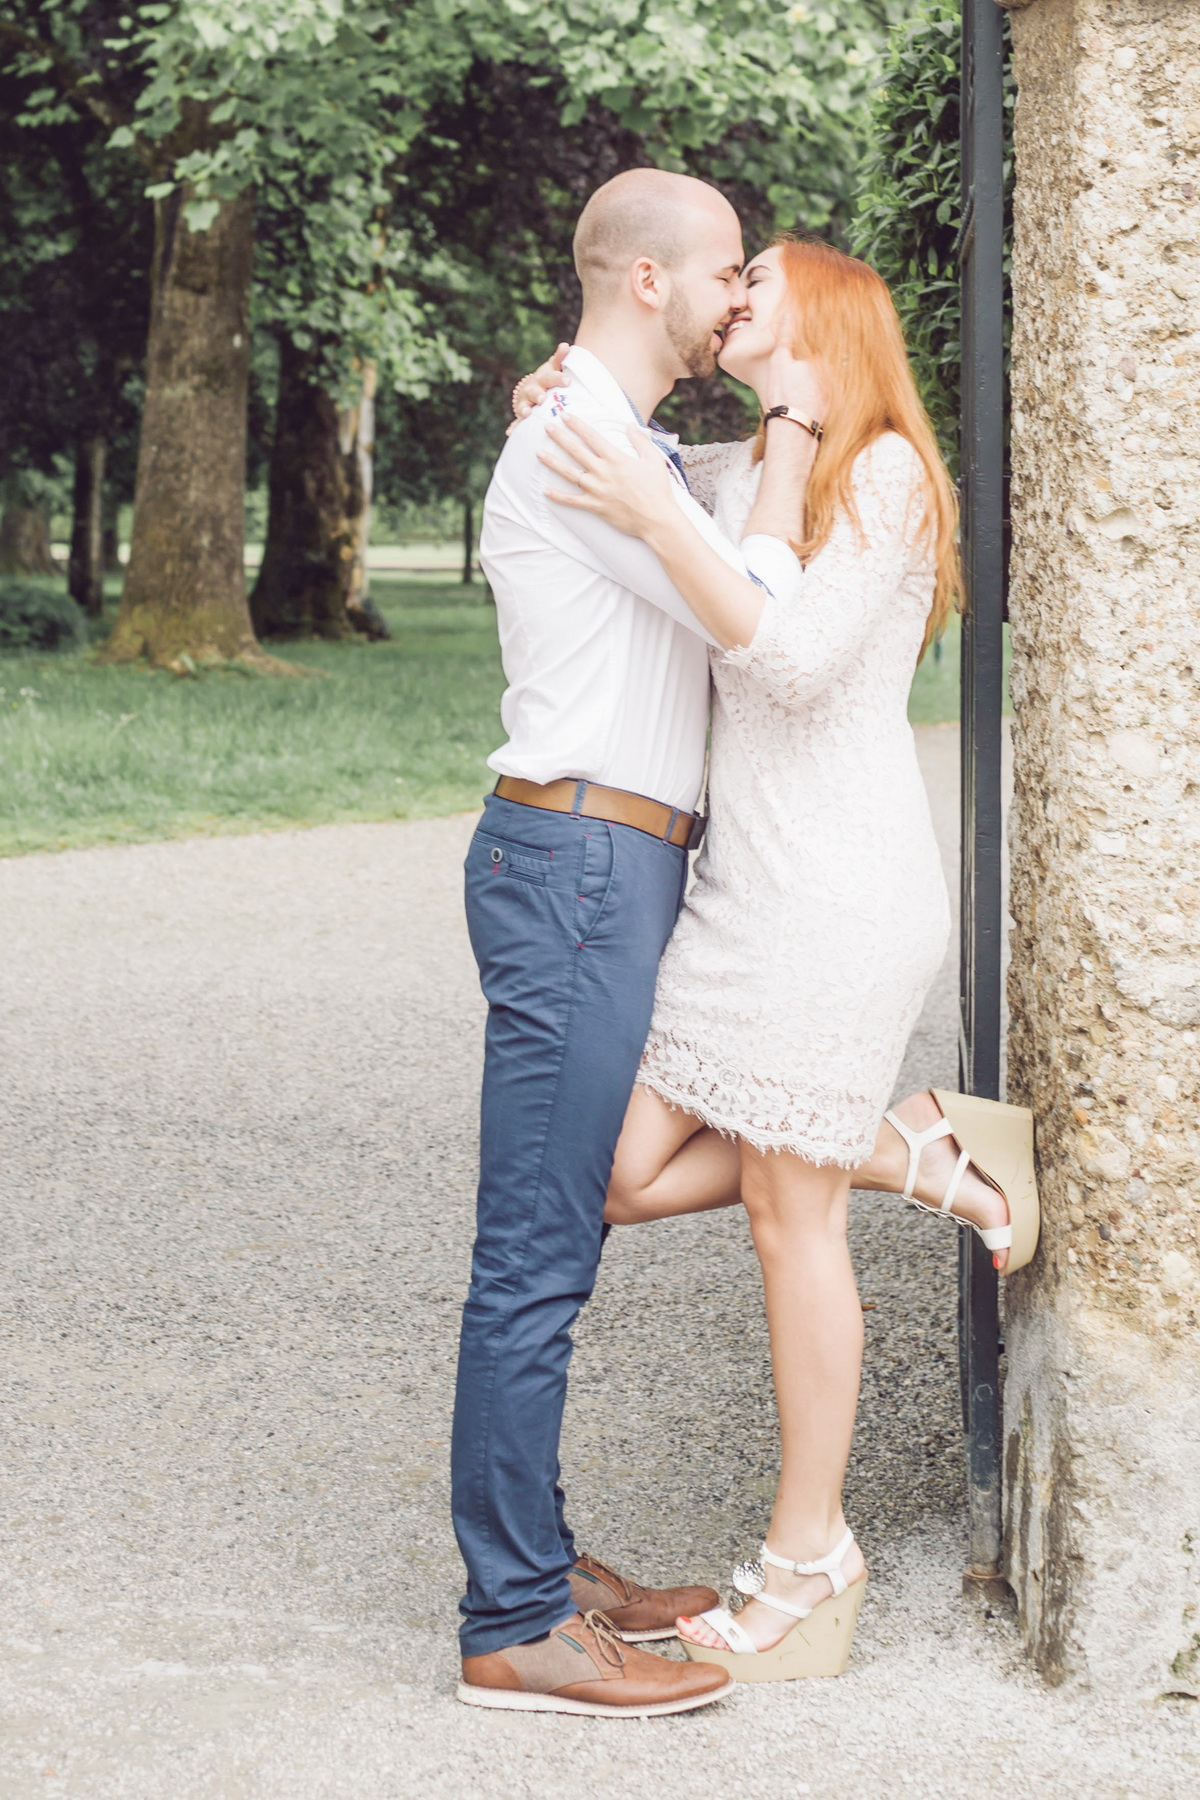 Claudia Sittig Photography - Couple - Love - Theresa and Thomas - 18